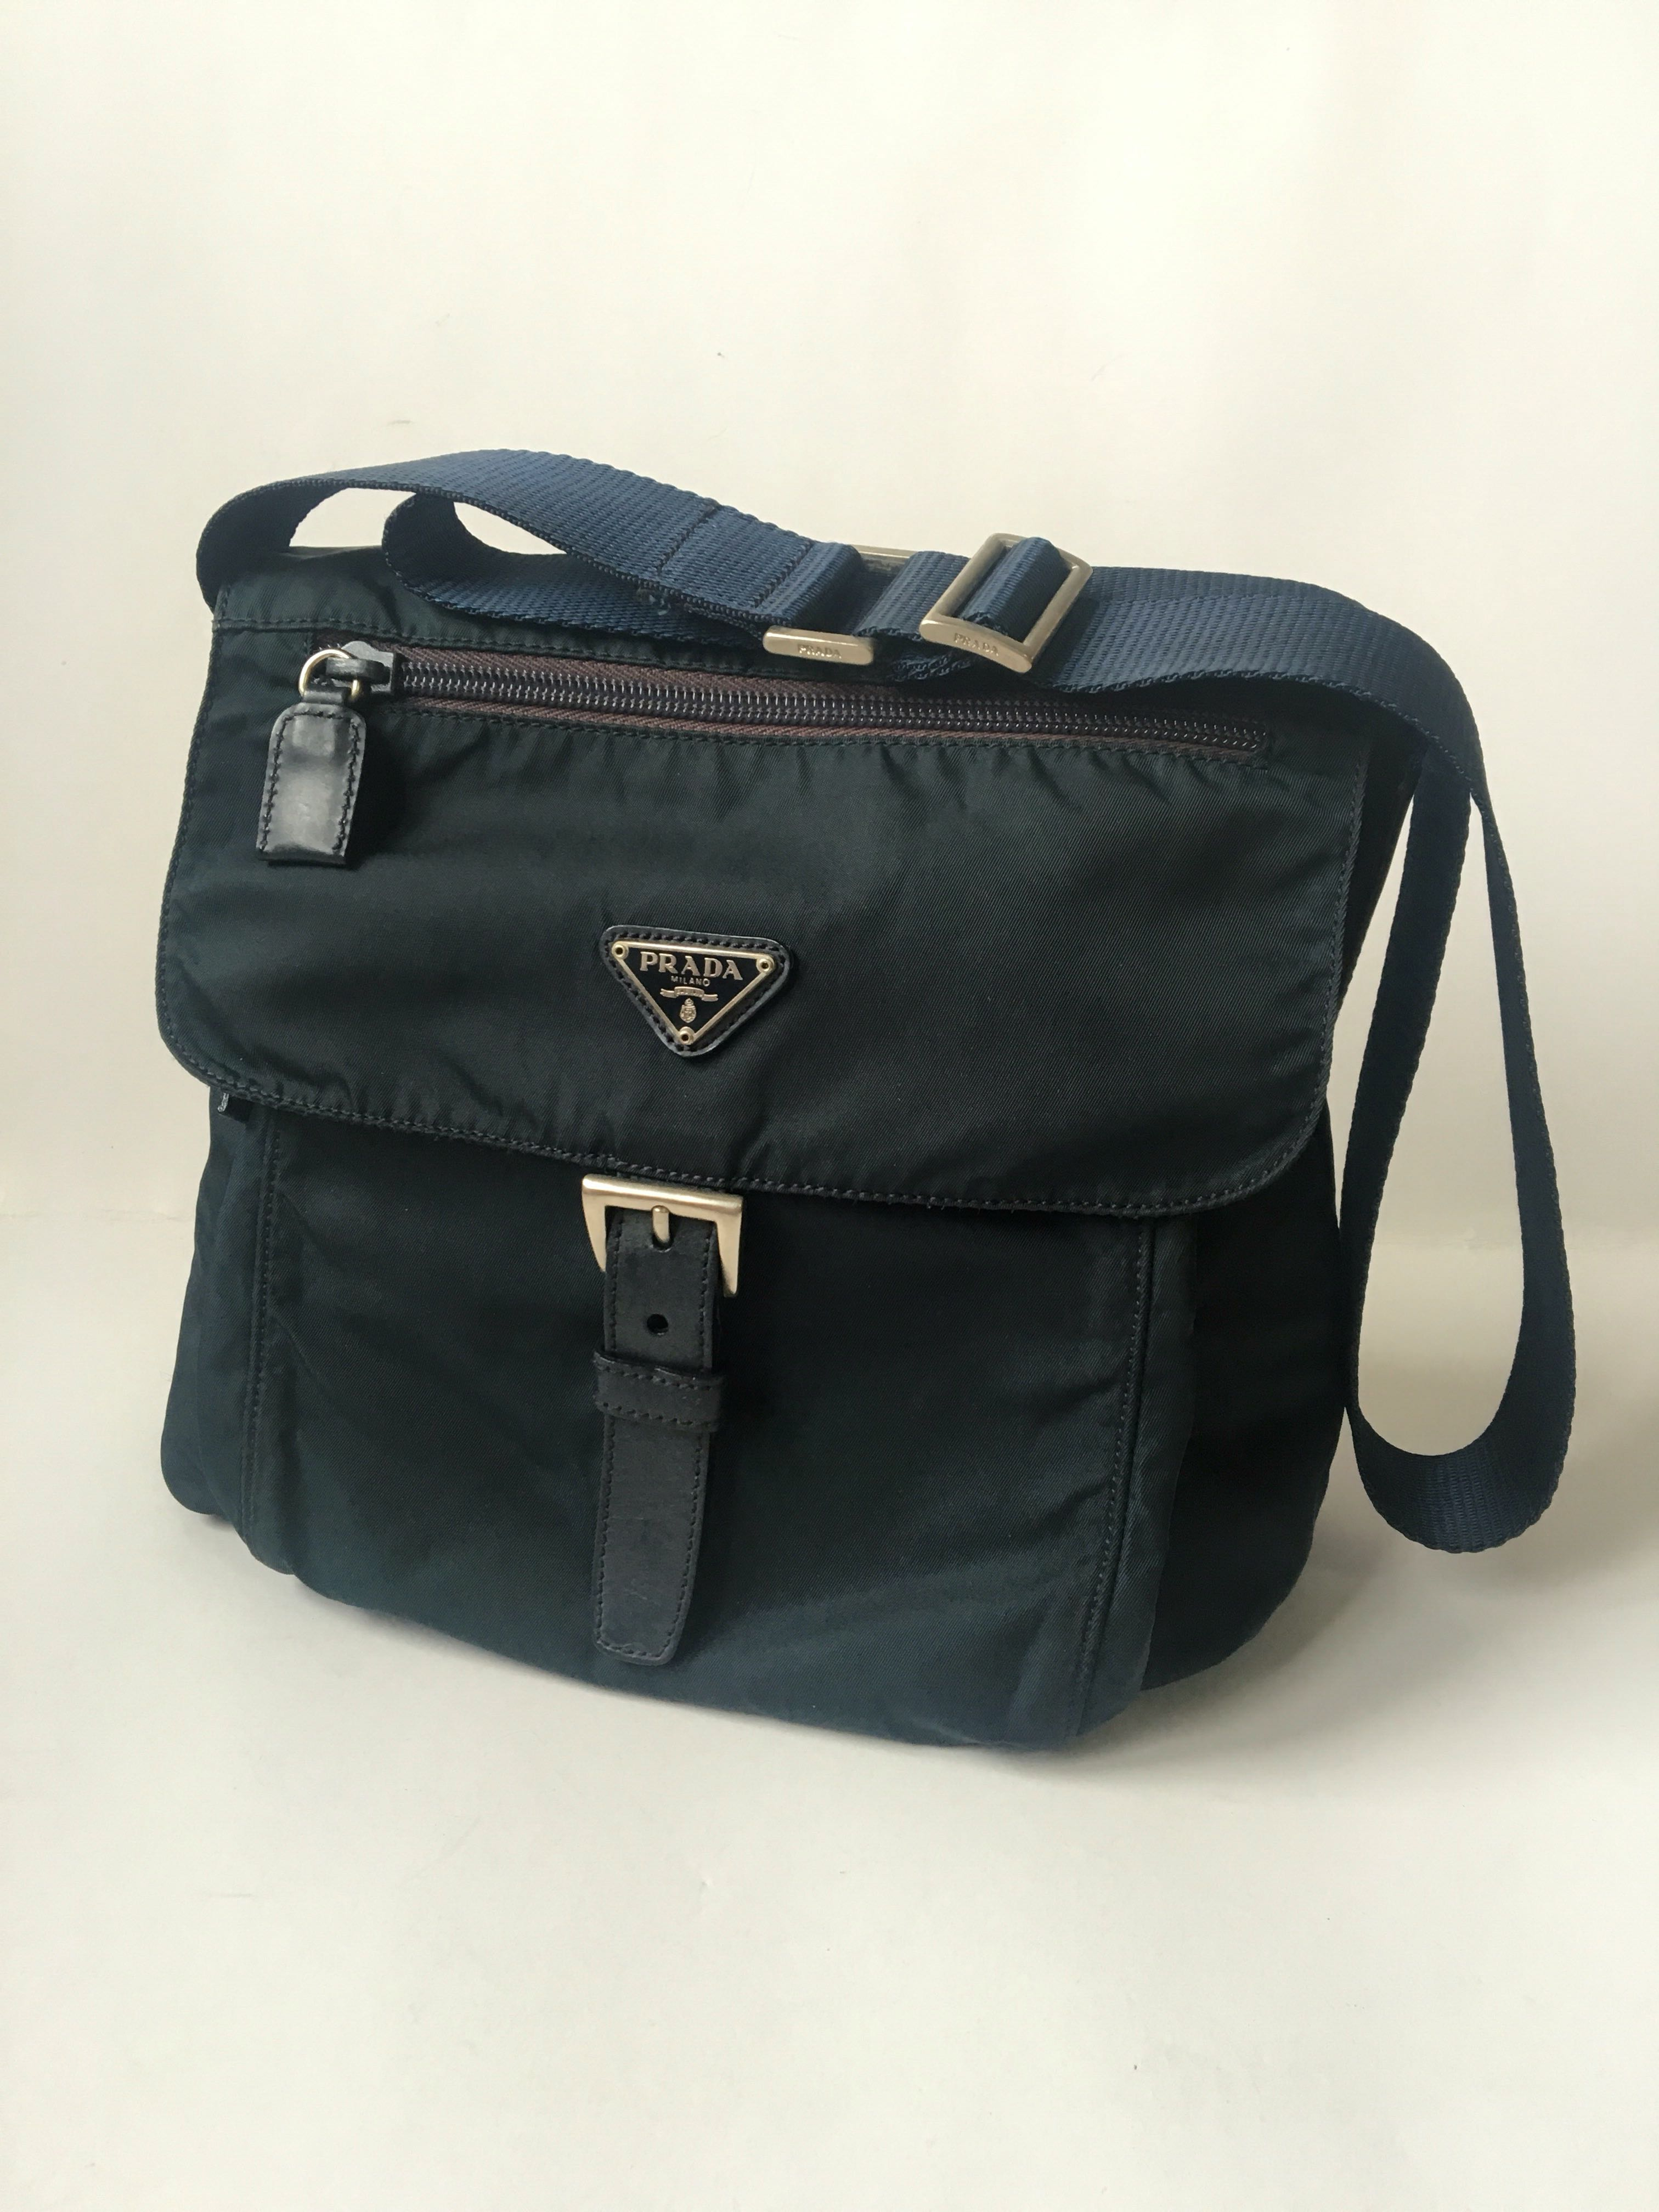 db2adf77d251cd Prada Messenger Bag 2018 | Stanford Center for Opportunity Policy in ...